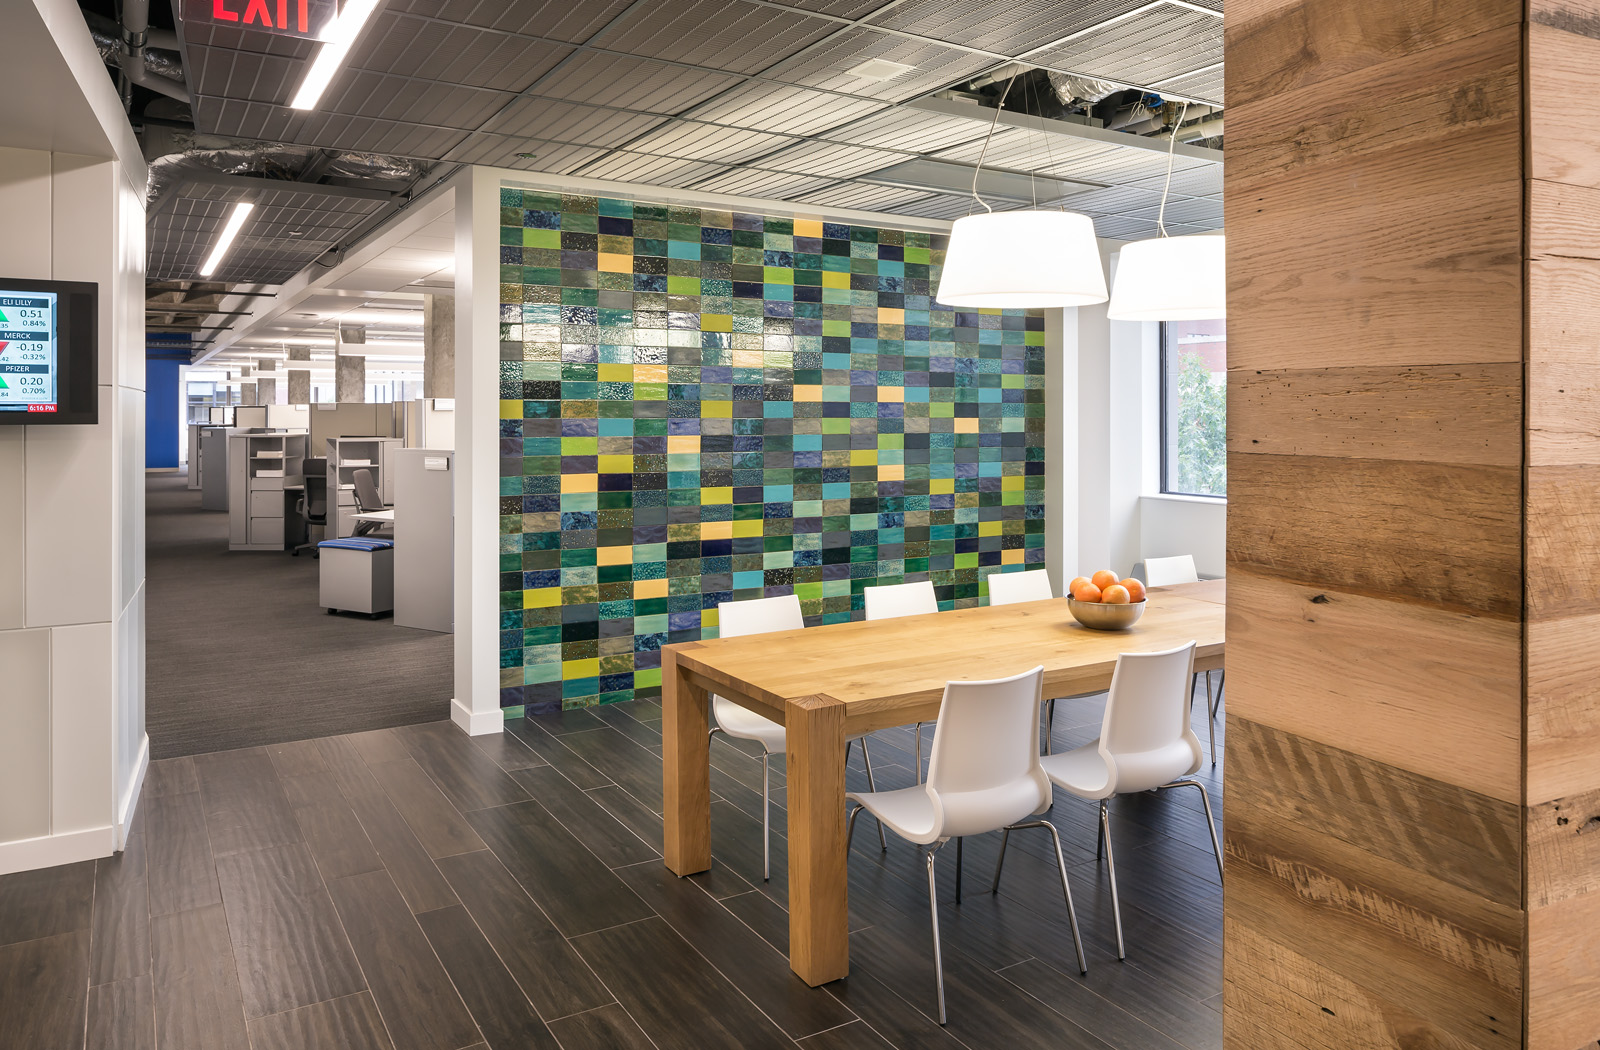 DkGr Has Been A Leader In Integrated Workplace Design The Indianapolis Area And Continues That